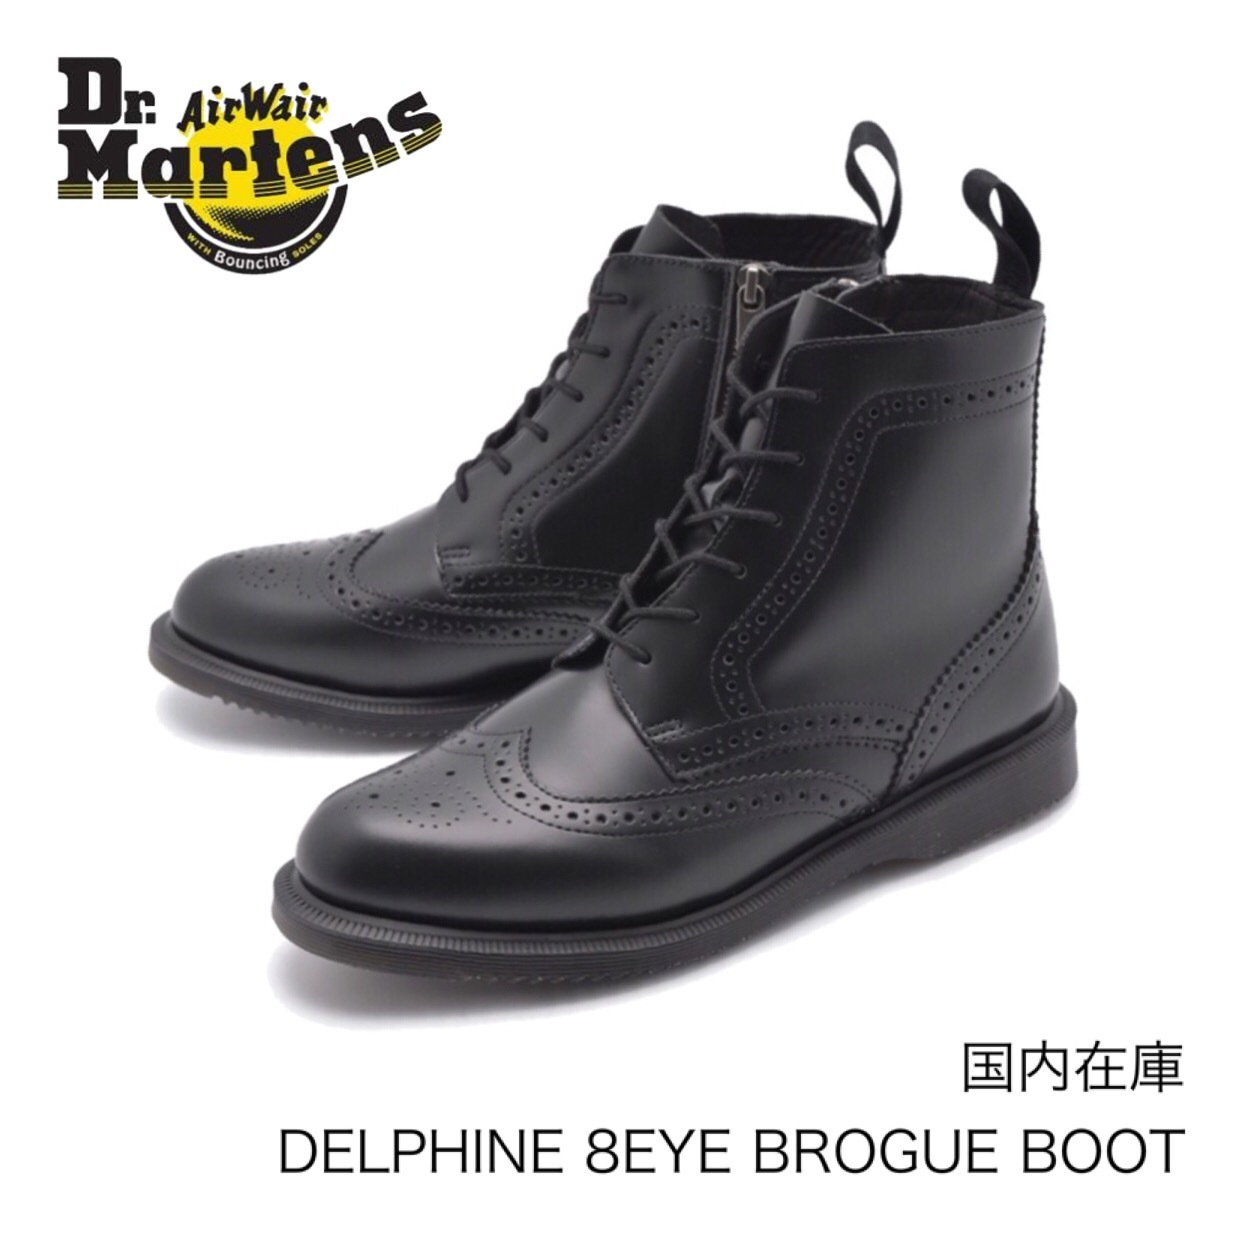 【国内在庫】Dr Martens/DELPHINE 8EYE BROGUE BOOT